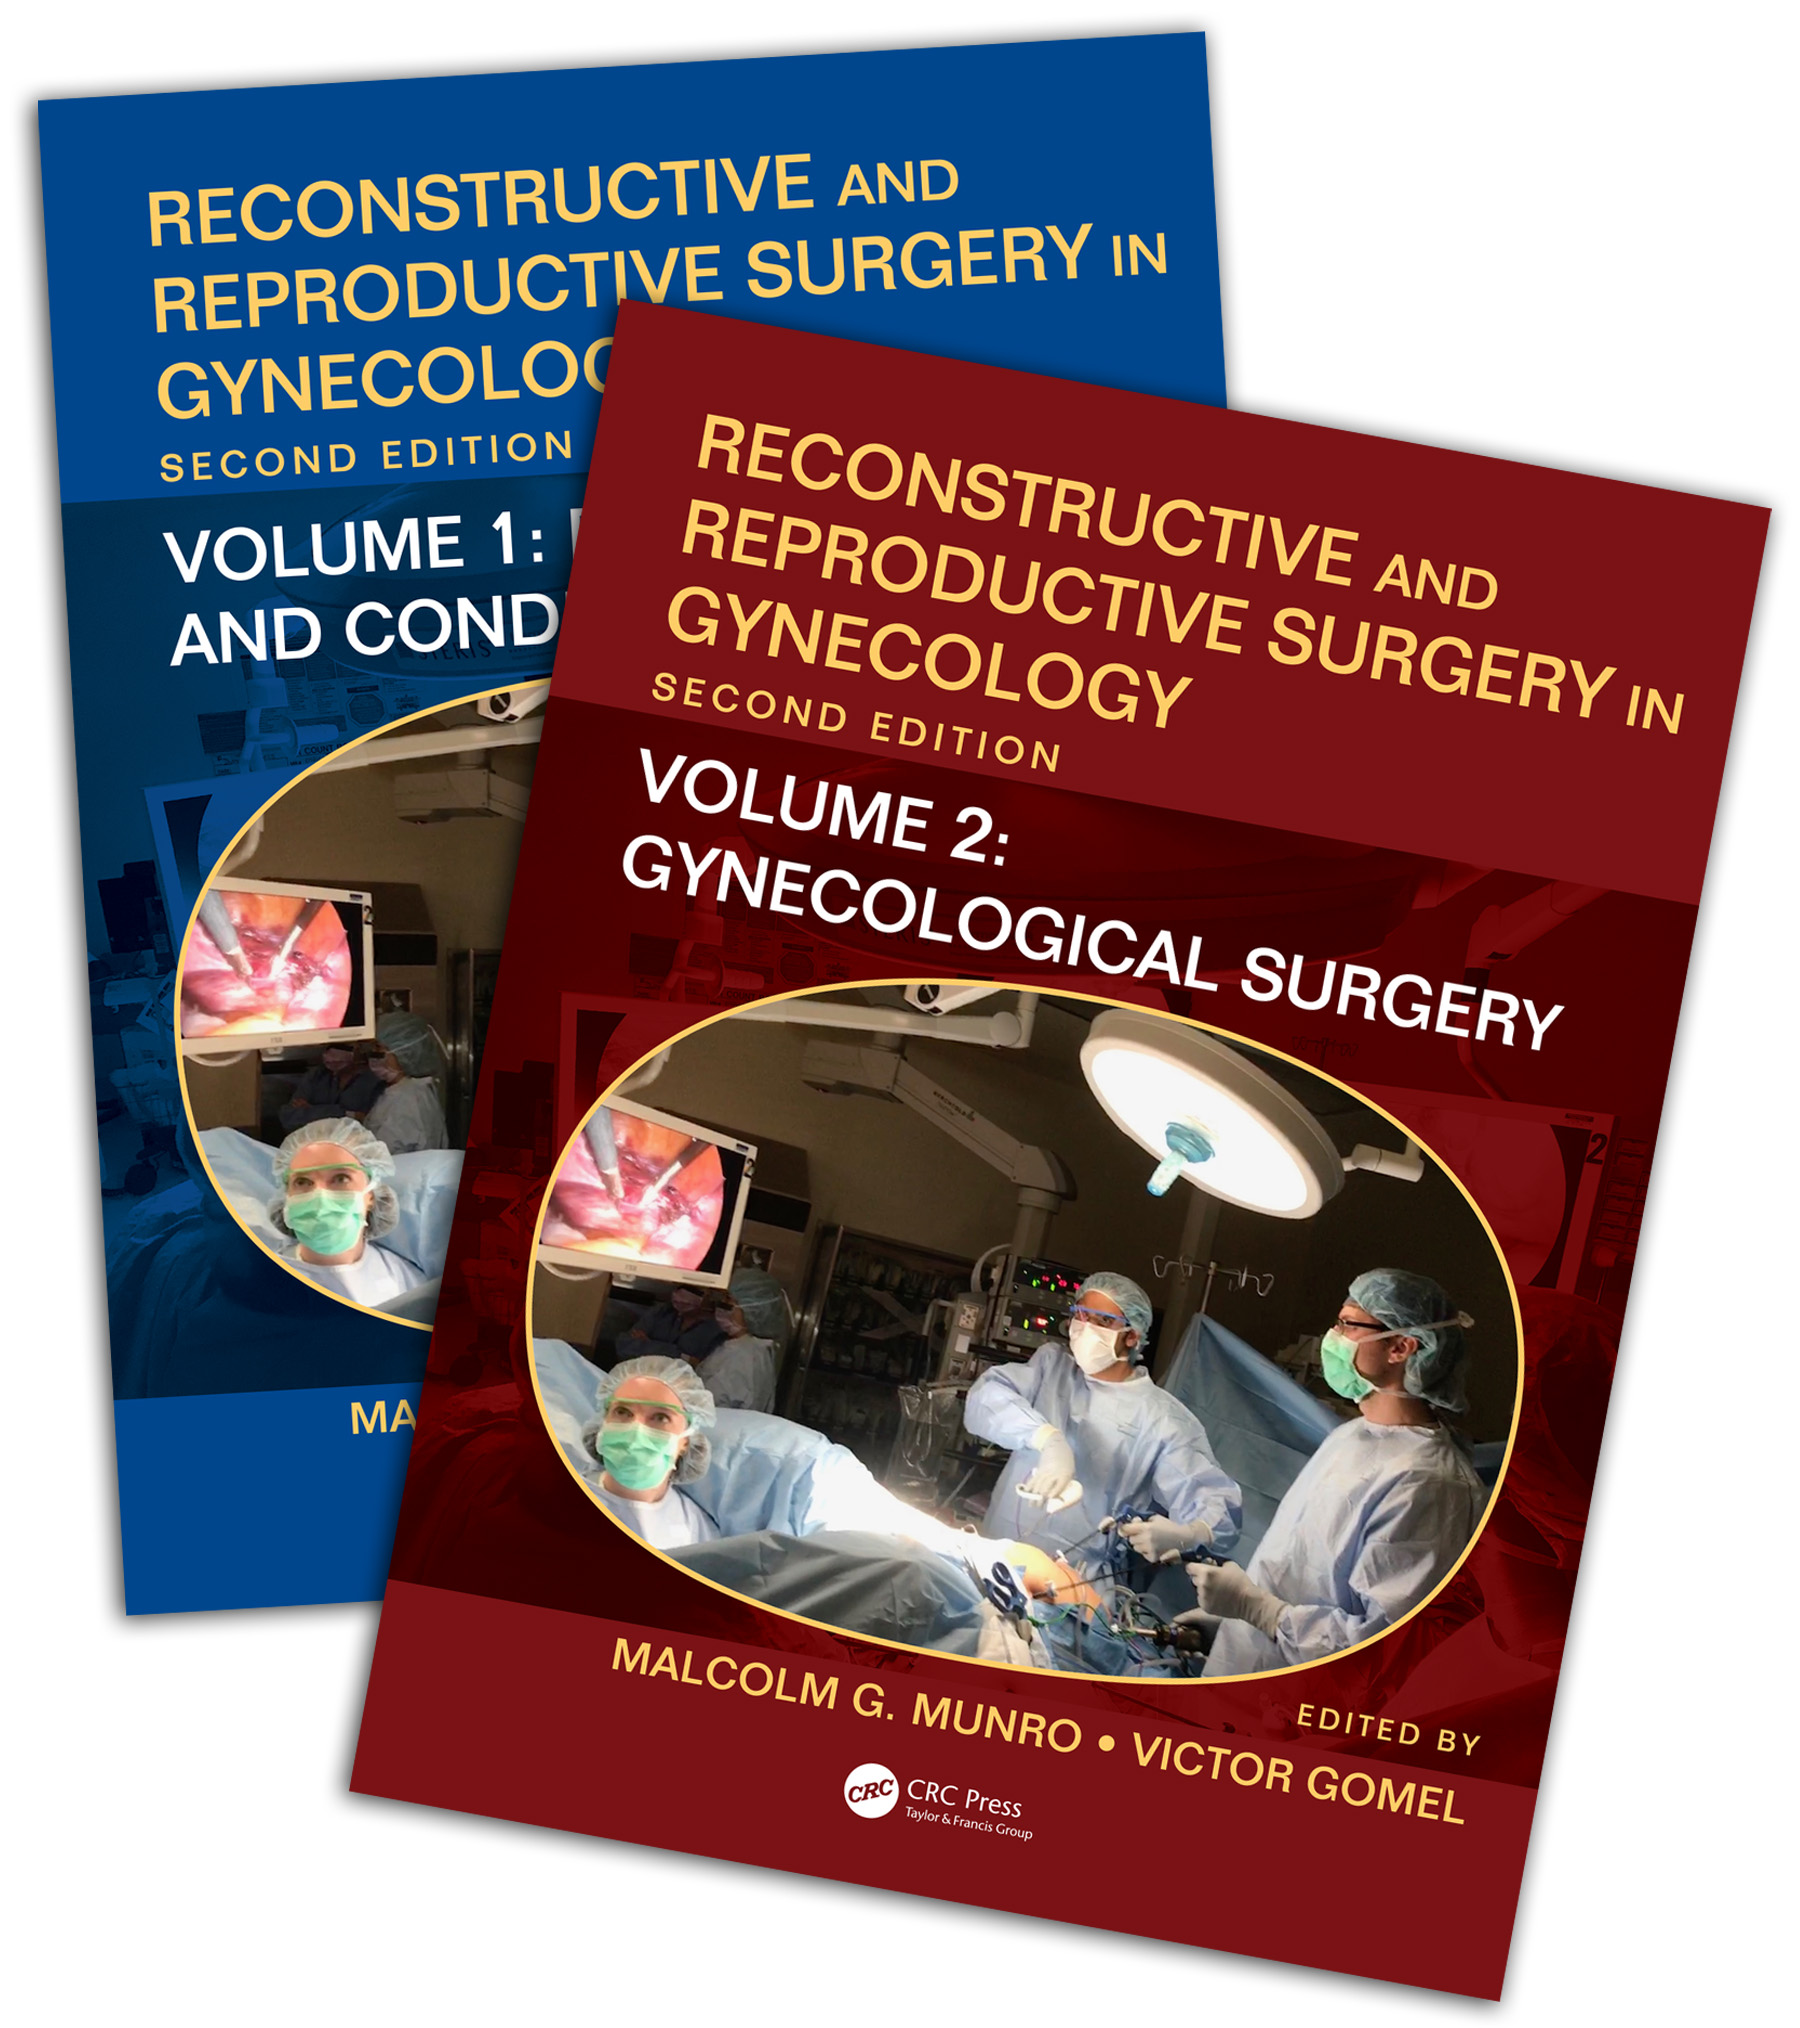 Reconstructive and Reproductive Surgery in Gynecology, Second Edition: Two Volume Set, 2nd Edition (Pack - Book and Ebook) book cover